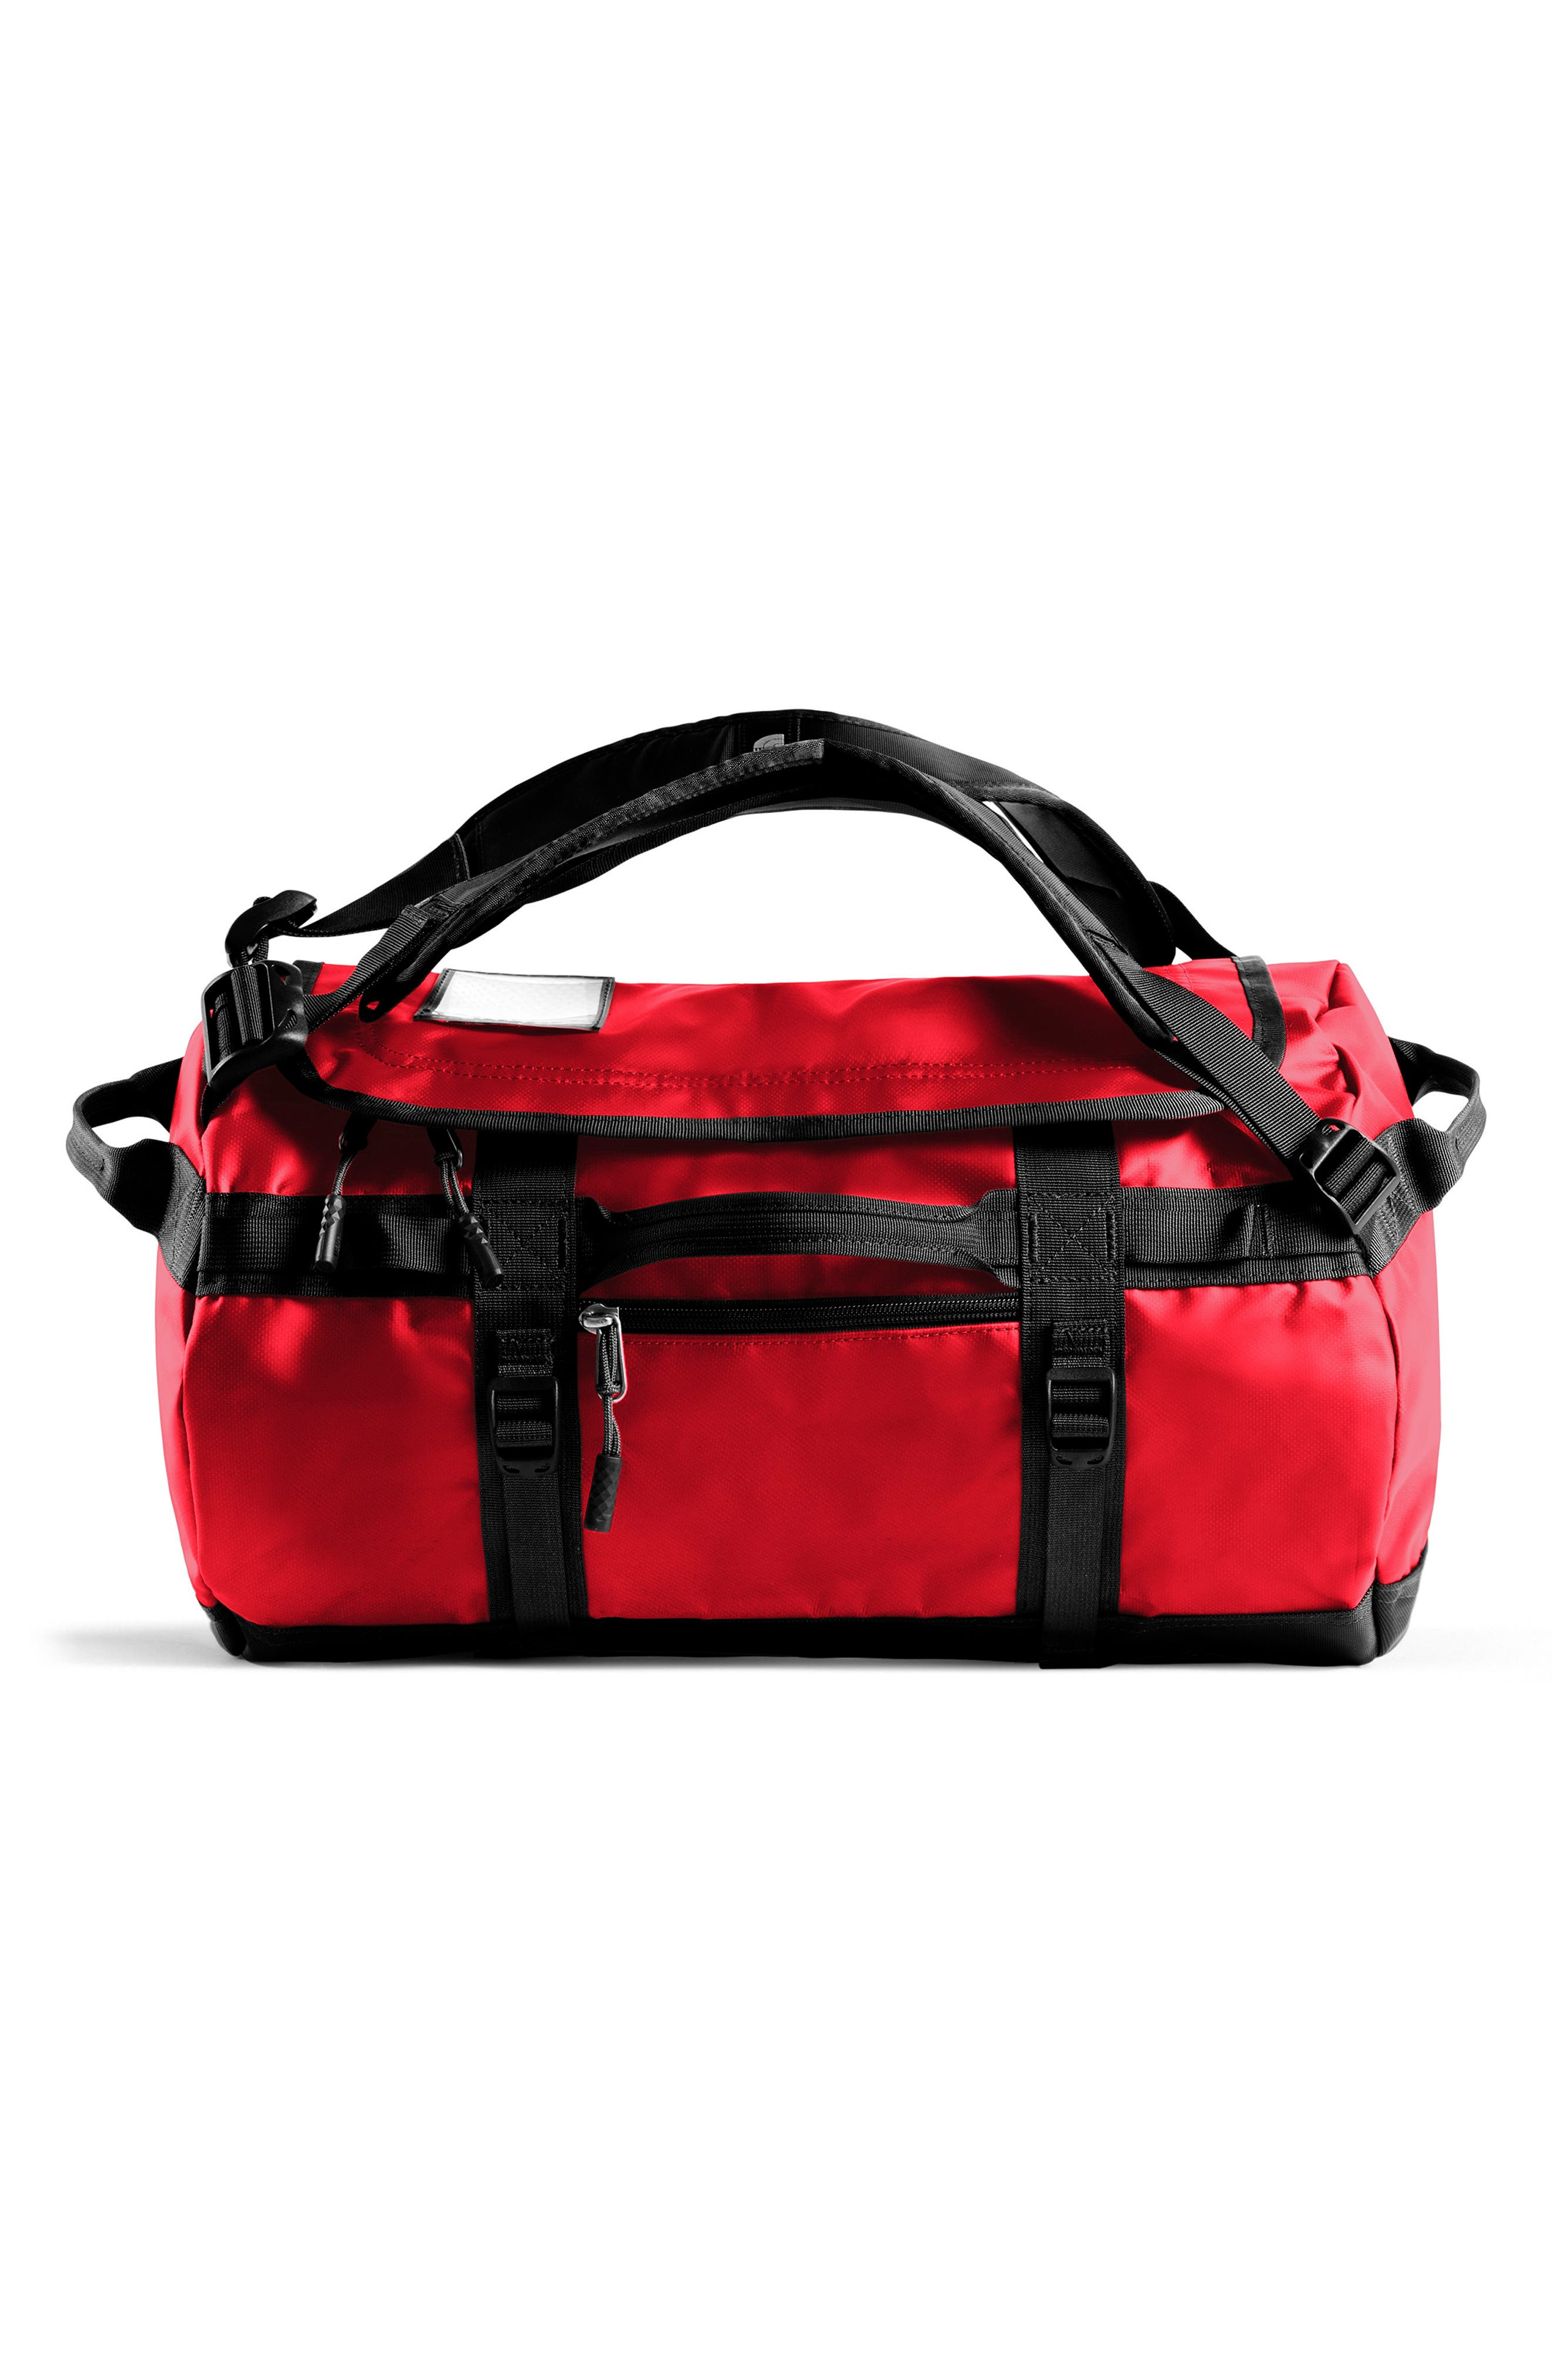 The North Face Base Camp Duffle Bag - Red